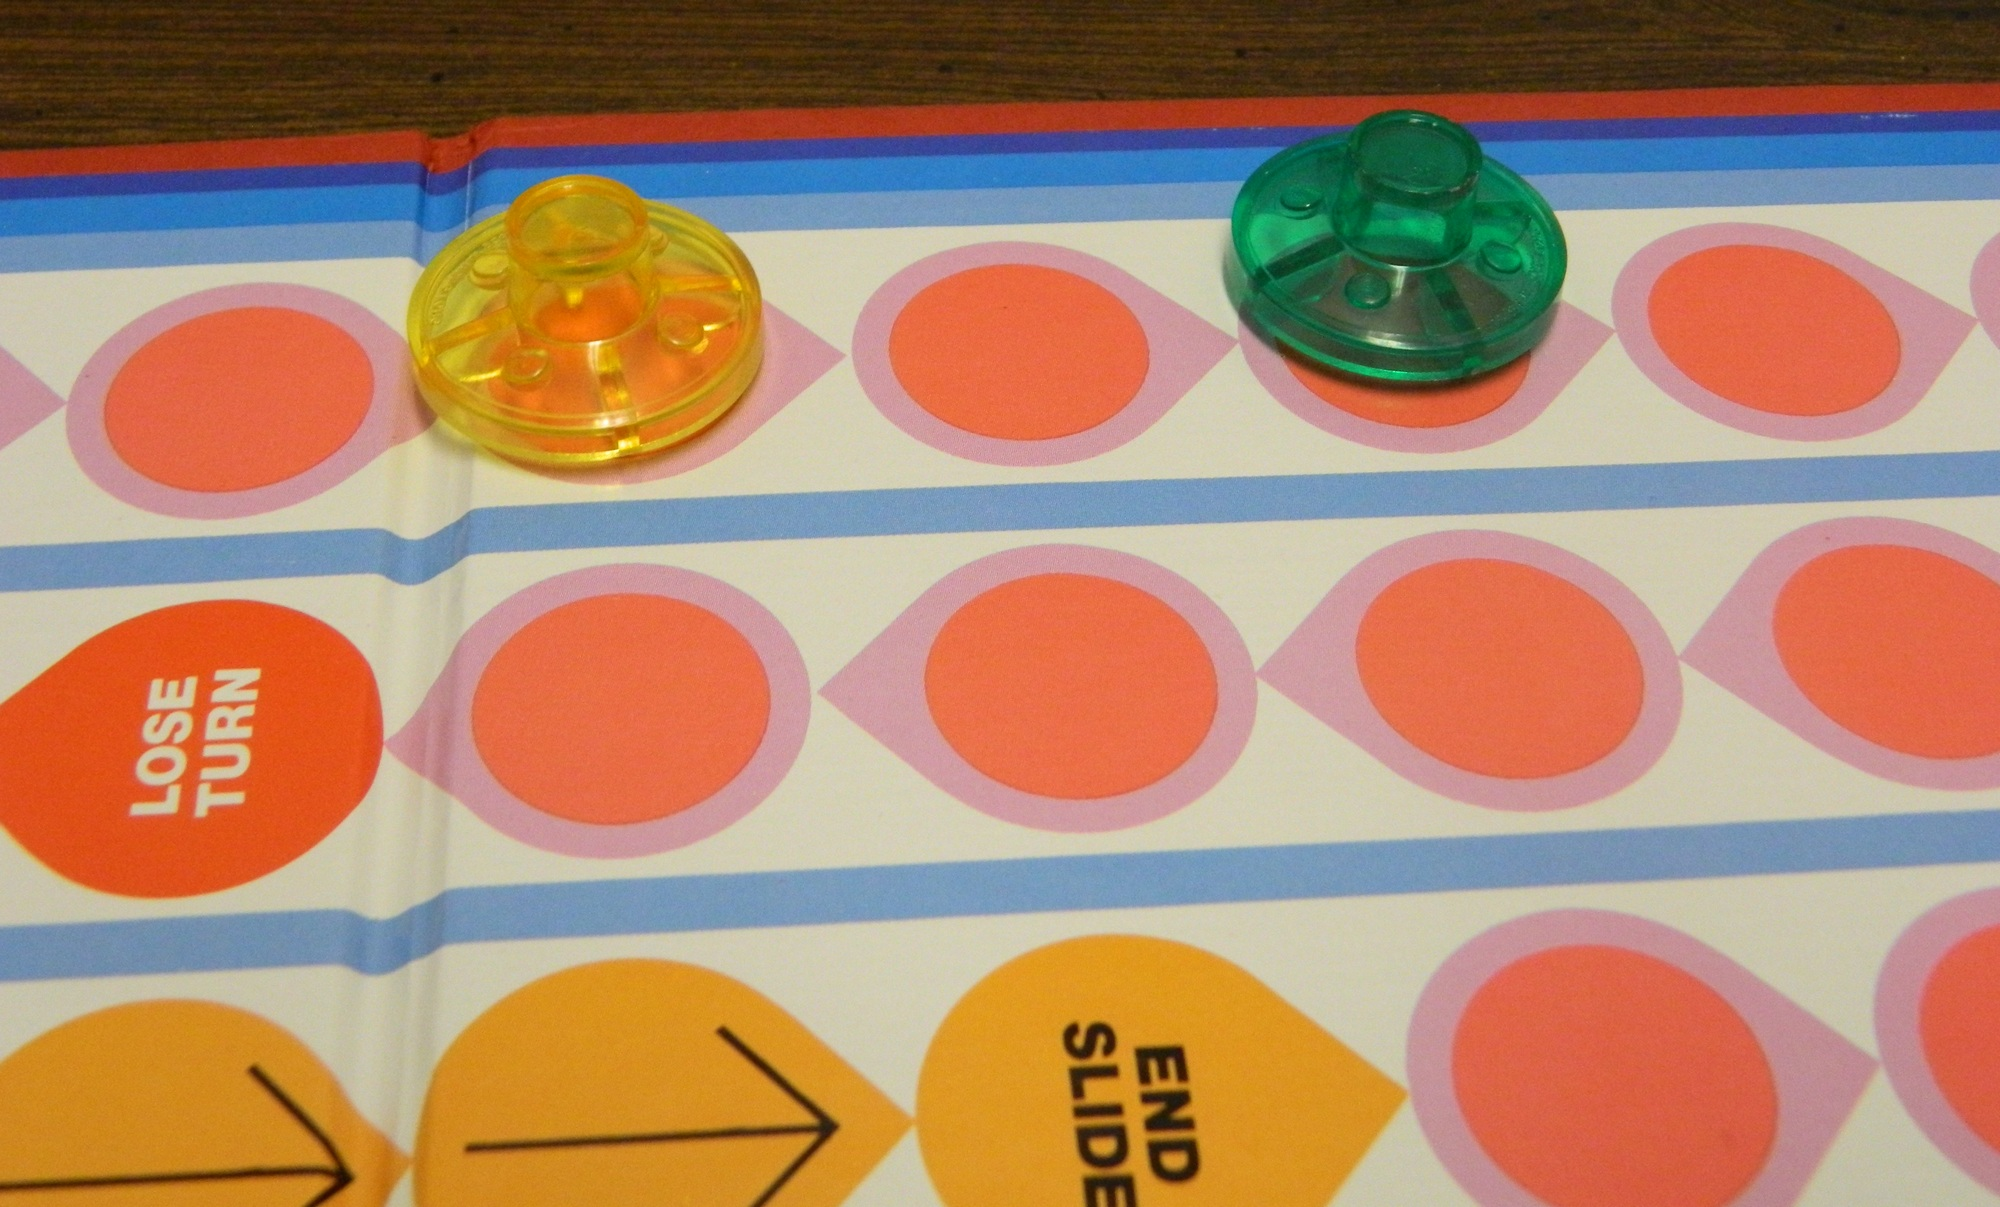 Fibber Board Game Review And Instructions Geeky Hobbies